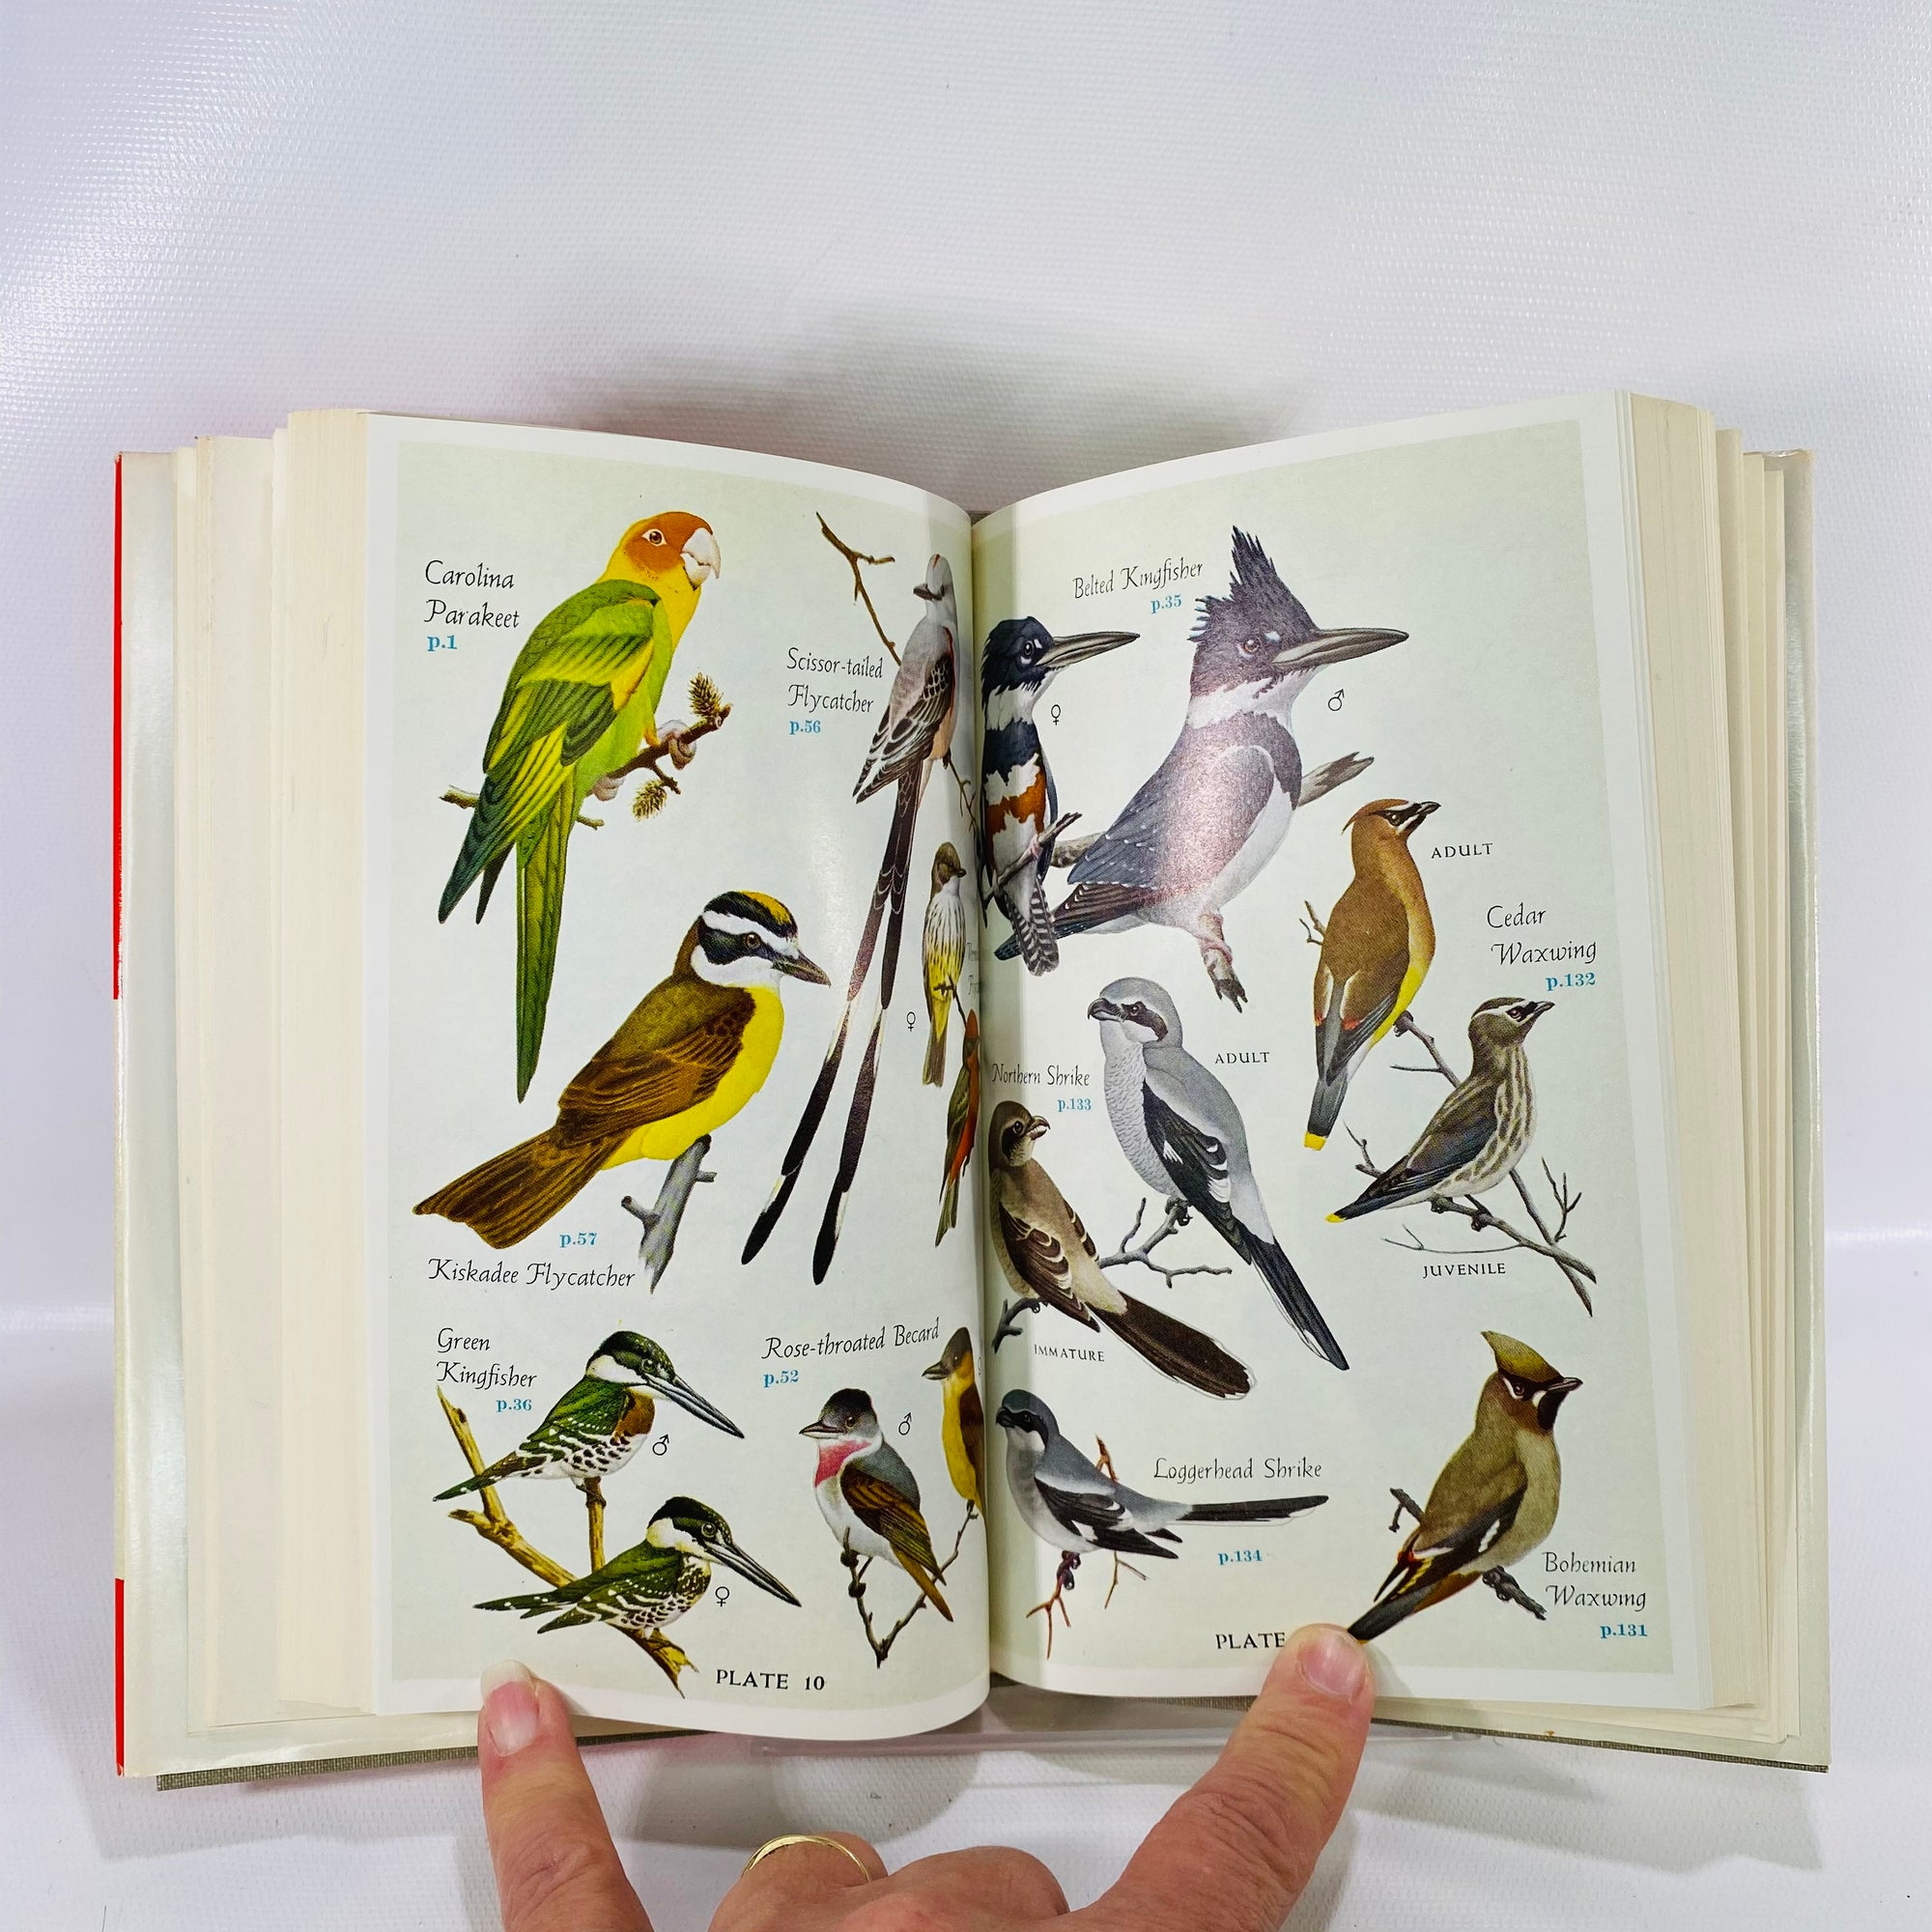 Audubon Land Bird Guide Birds by Richard Pough 1949-Reading Vintage